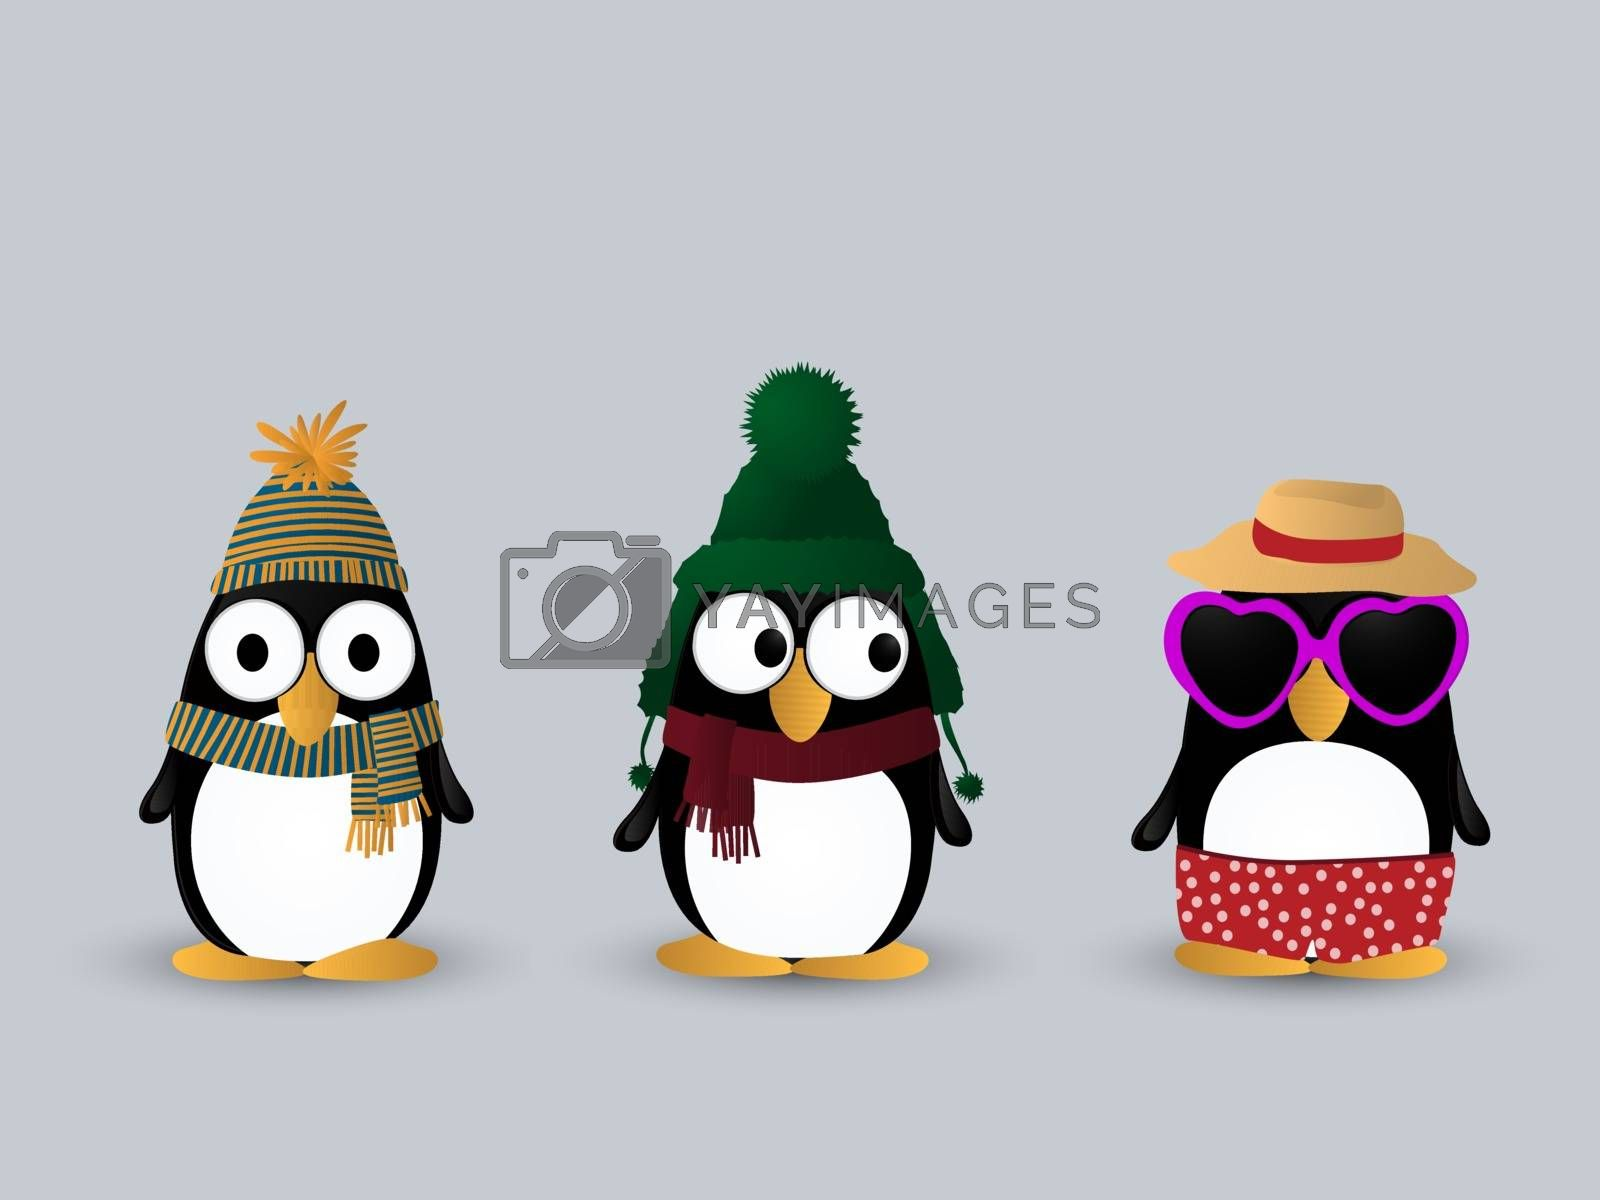 Royalty free image of Cute penguin characters by Lirch